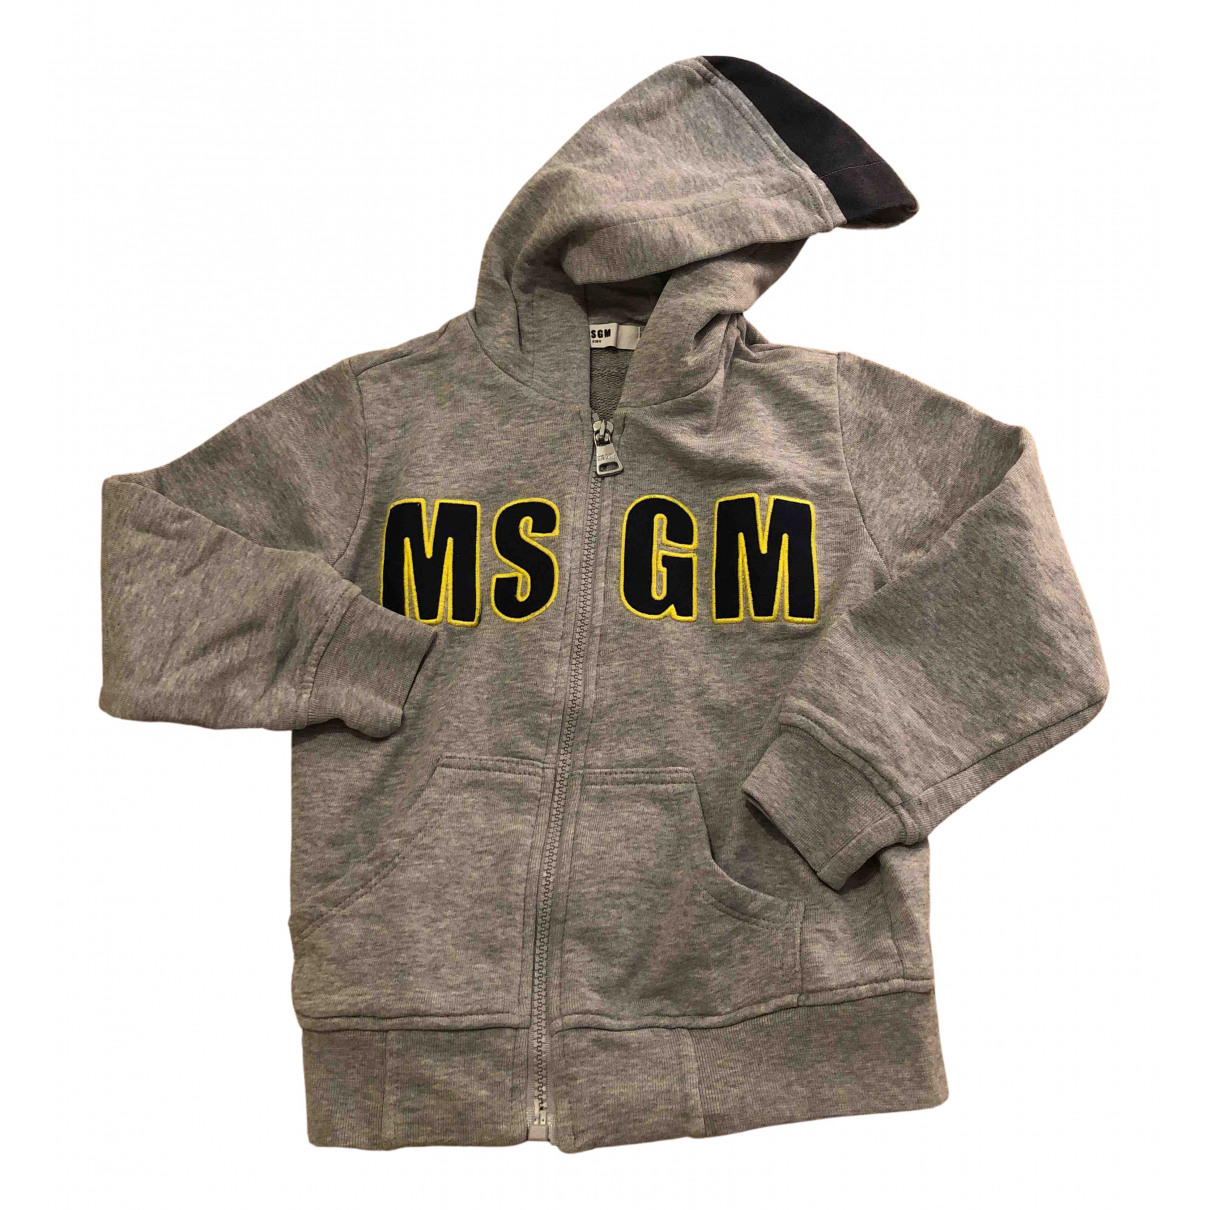 Msgm N Grey Cotton Knitwear for Kids 4 years - up to 102cm FR